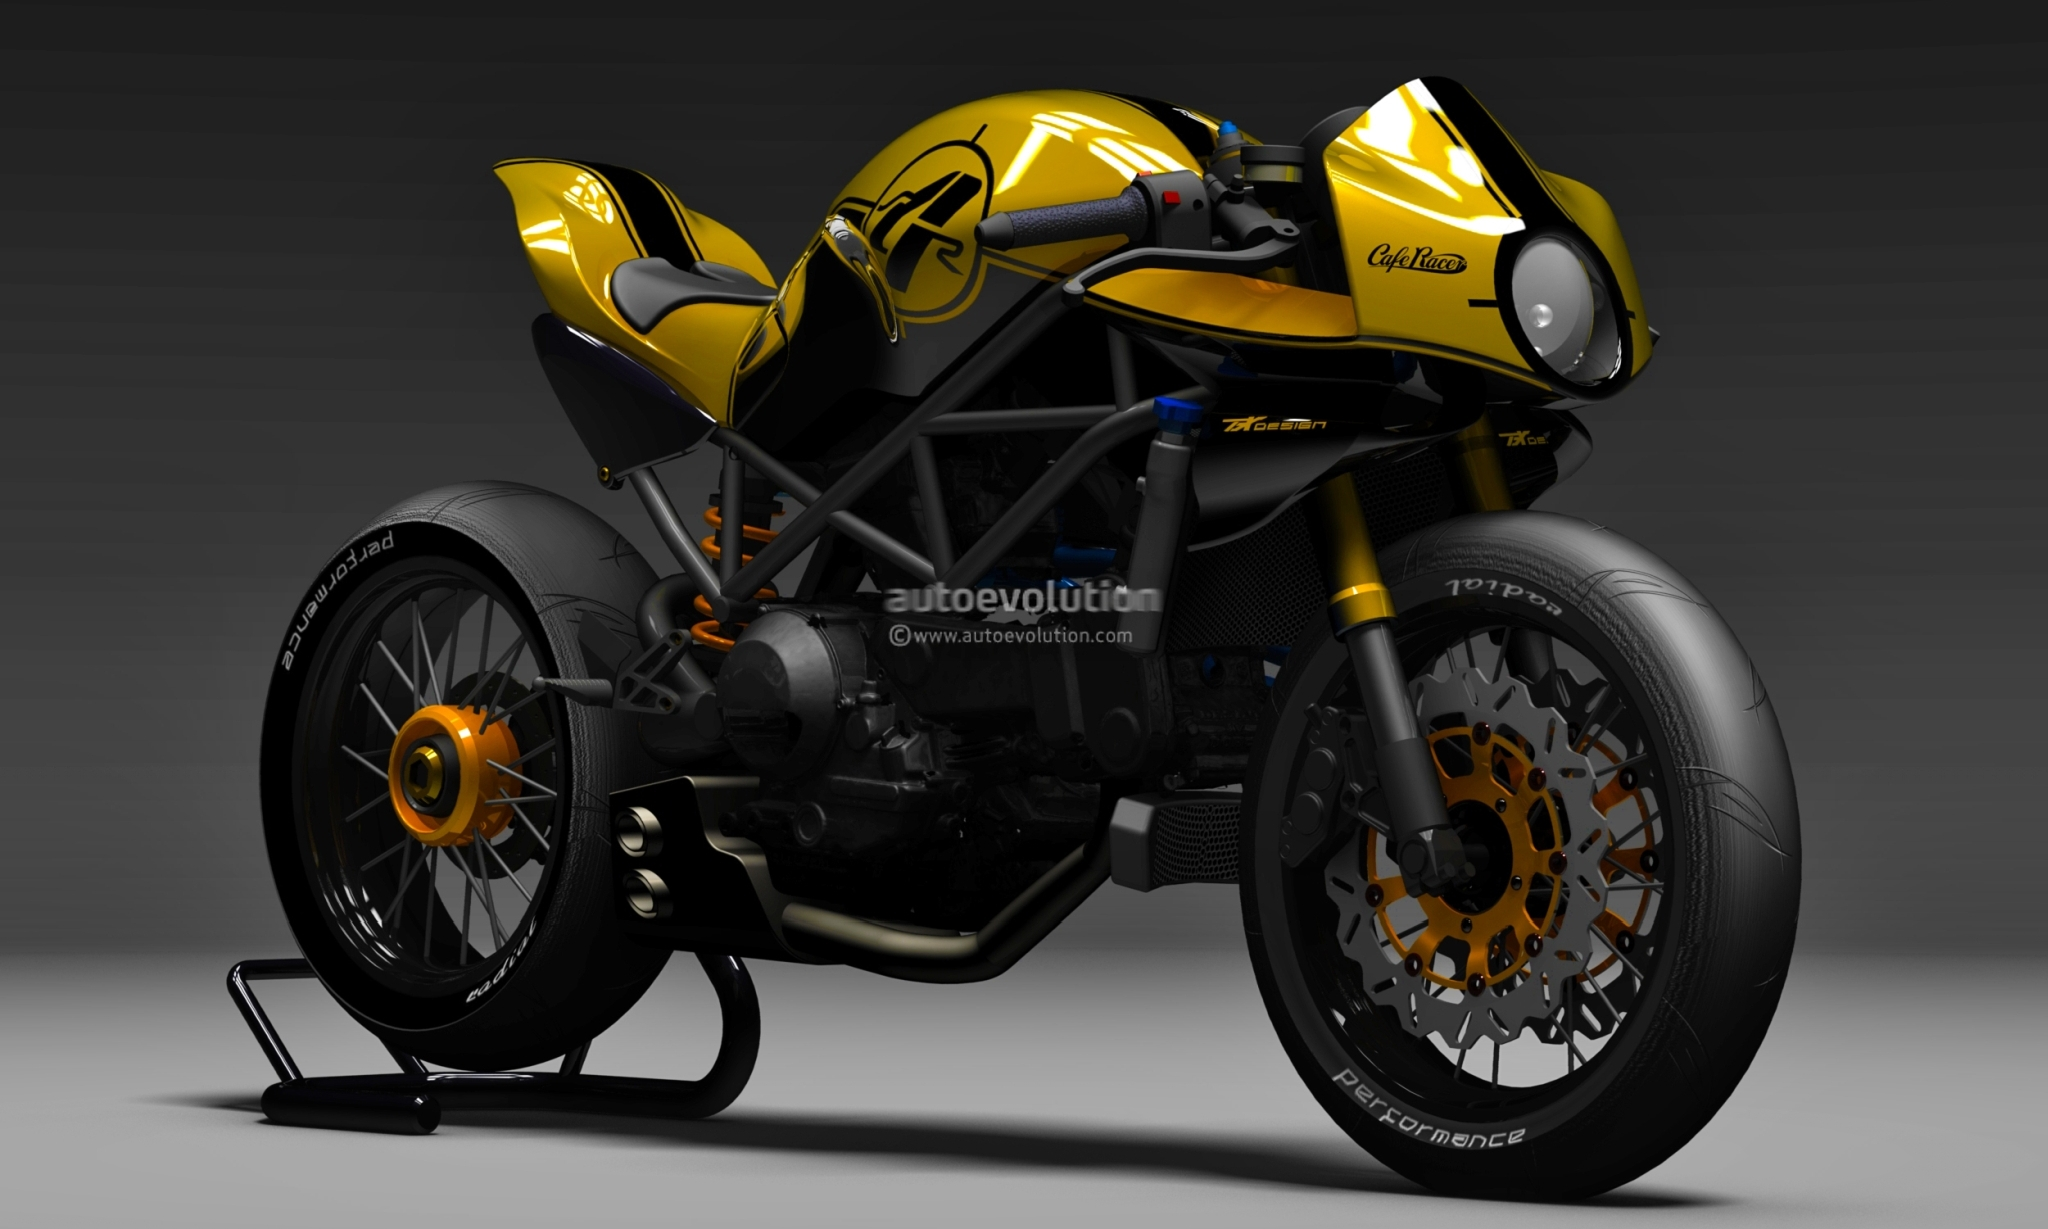 Jaw Dropping Paolo Tesio Ducati Body Kits Available In